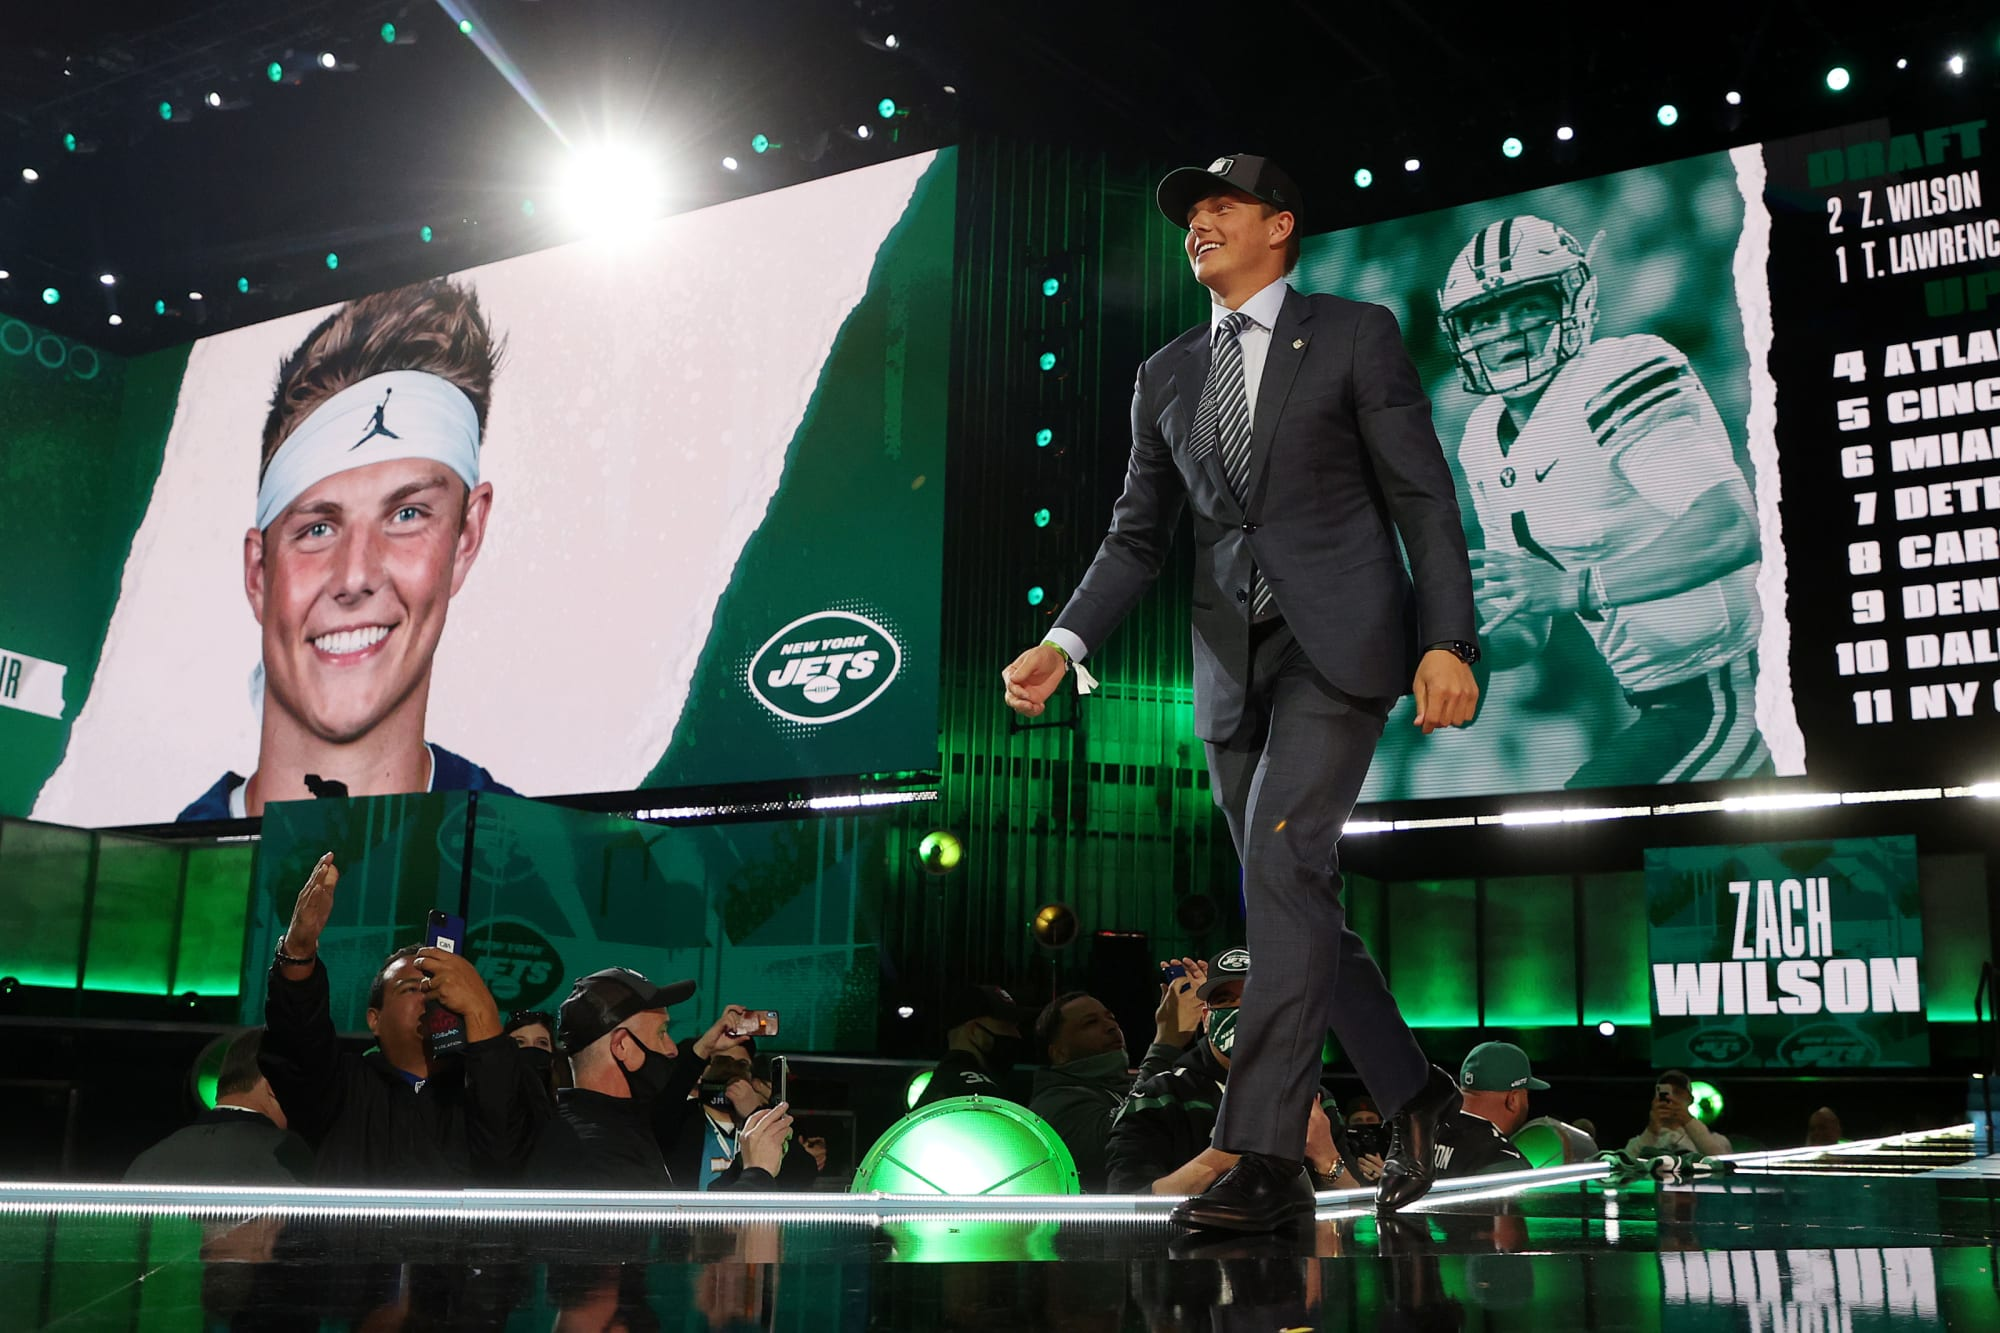 Did we just experience the greatest NY Jets draft ever?